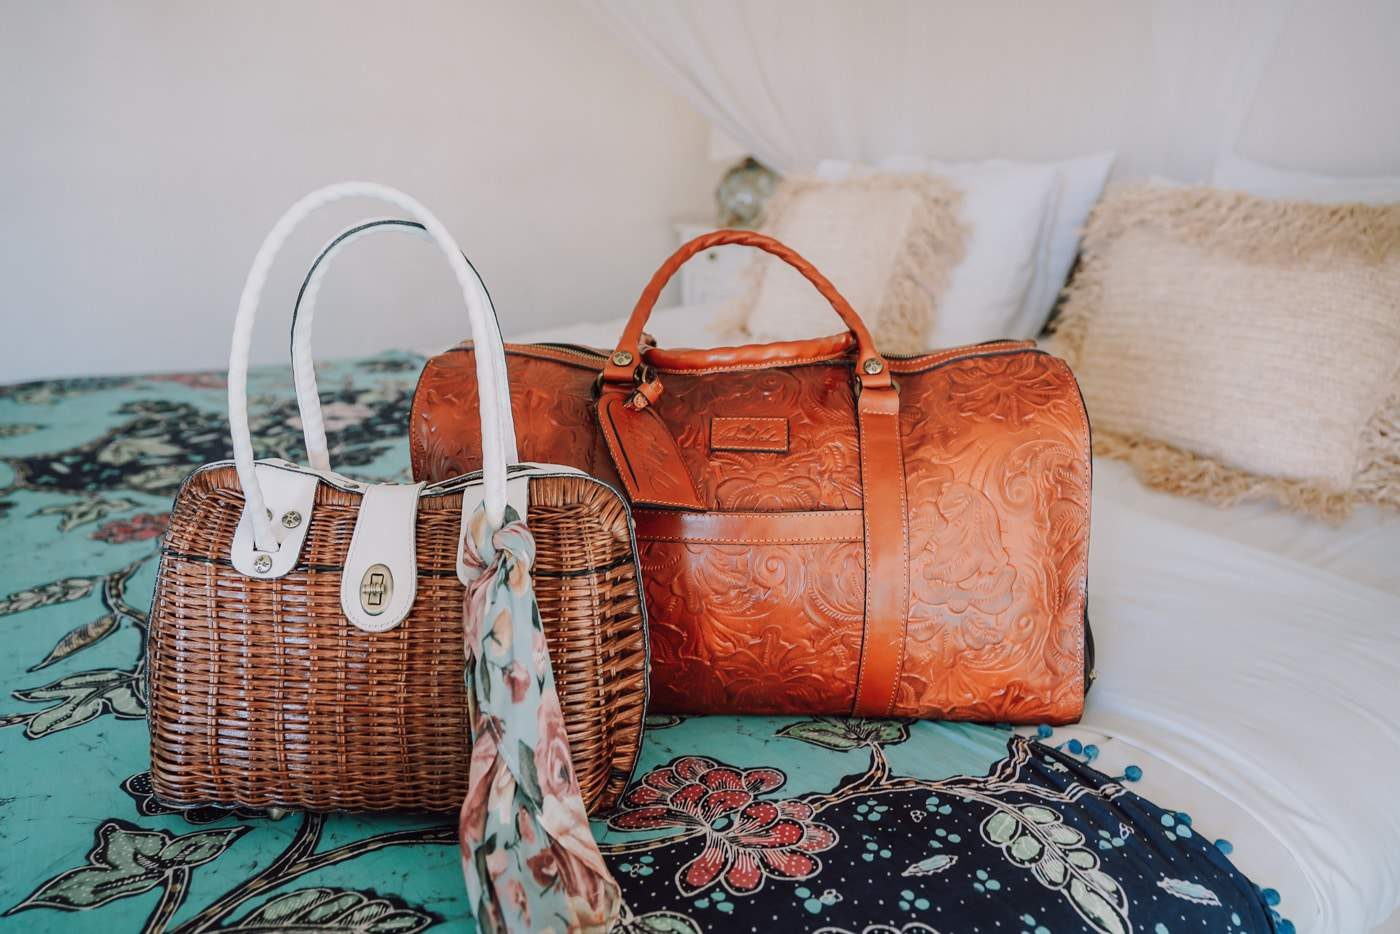 Lifestyle blogger Anna Baun of A Lily Love Affair shares Spring Style with Patricia Nash Designs.